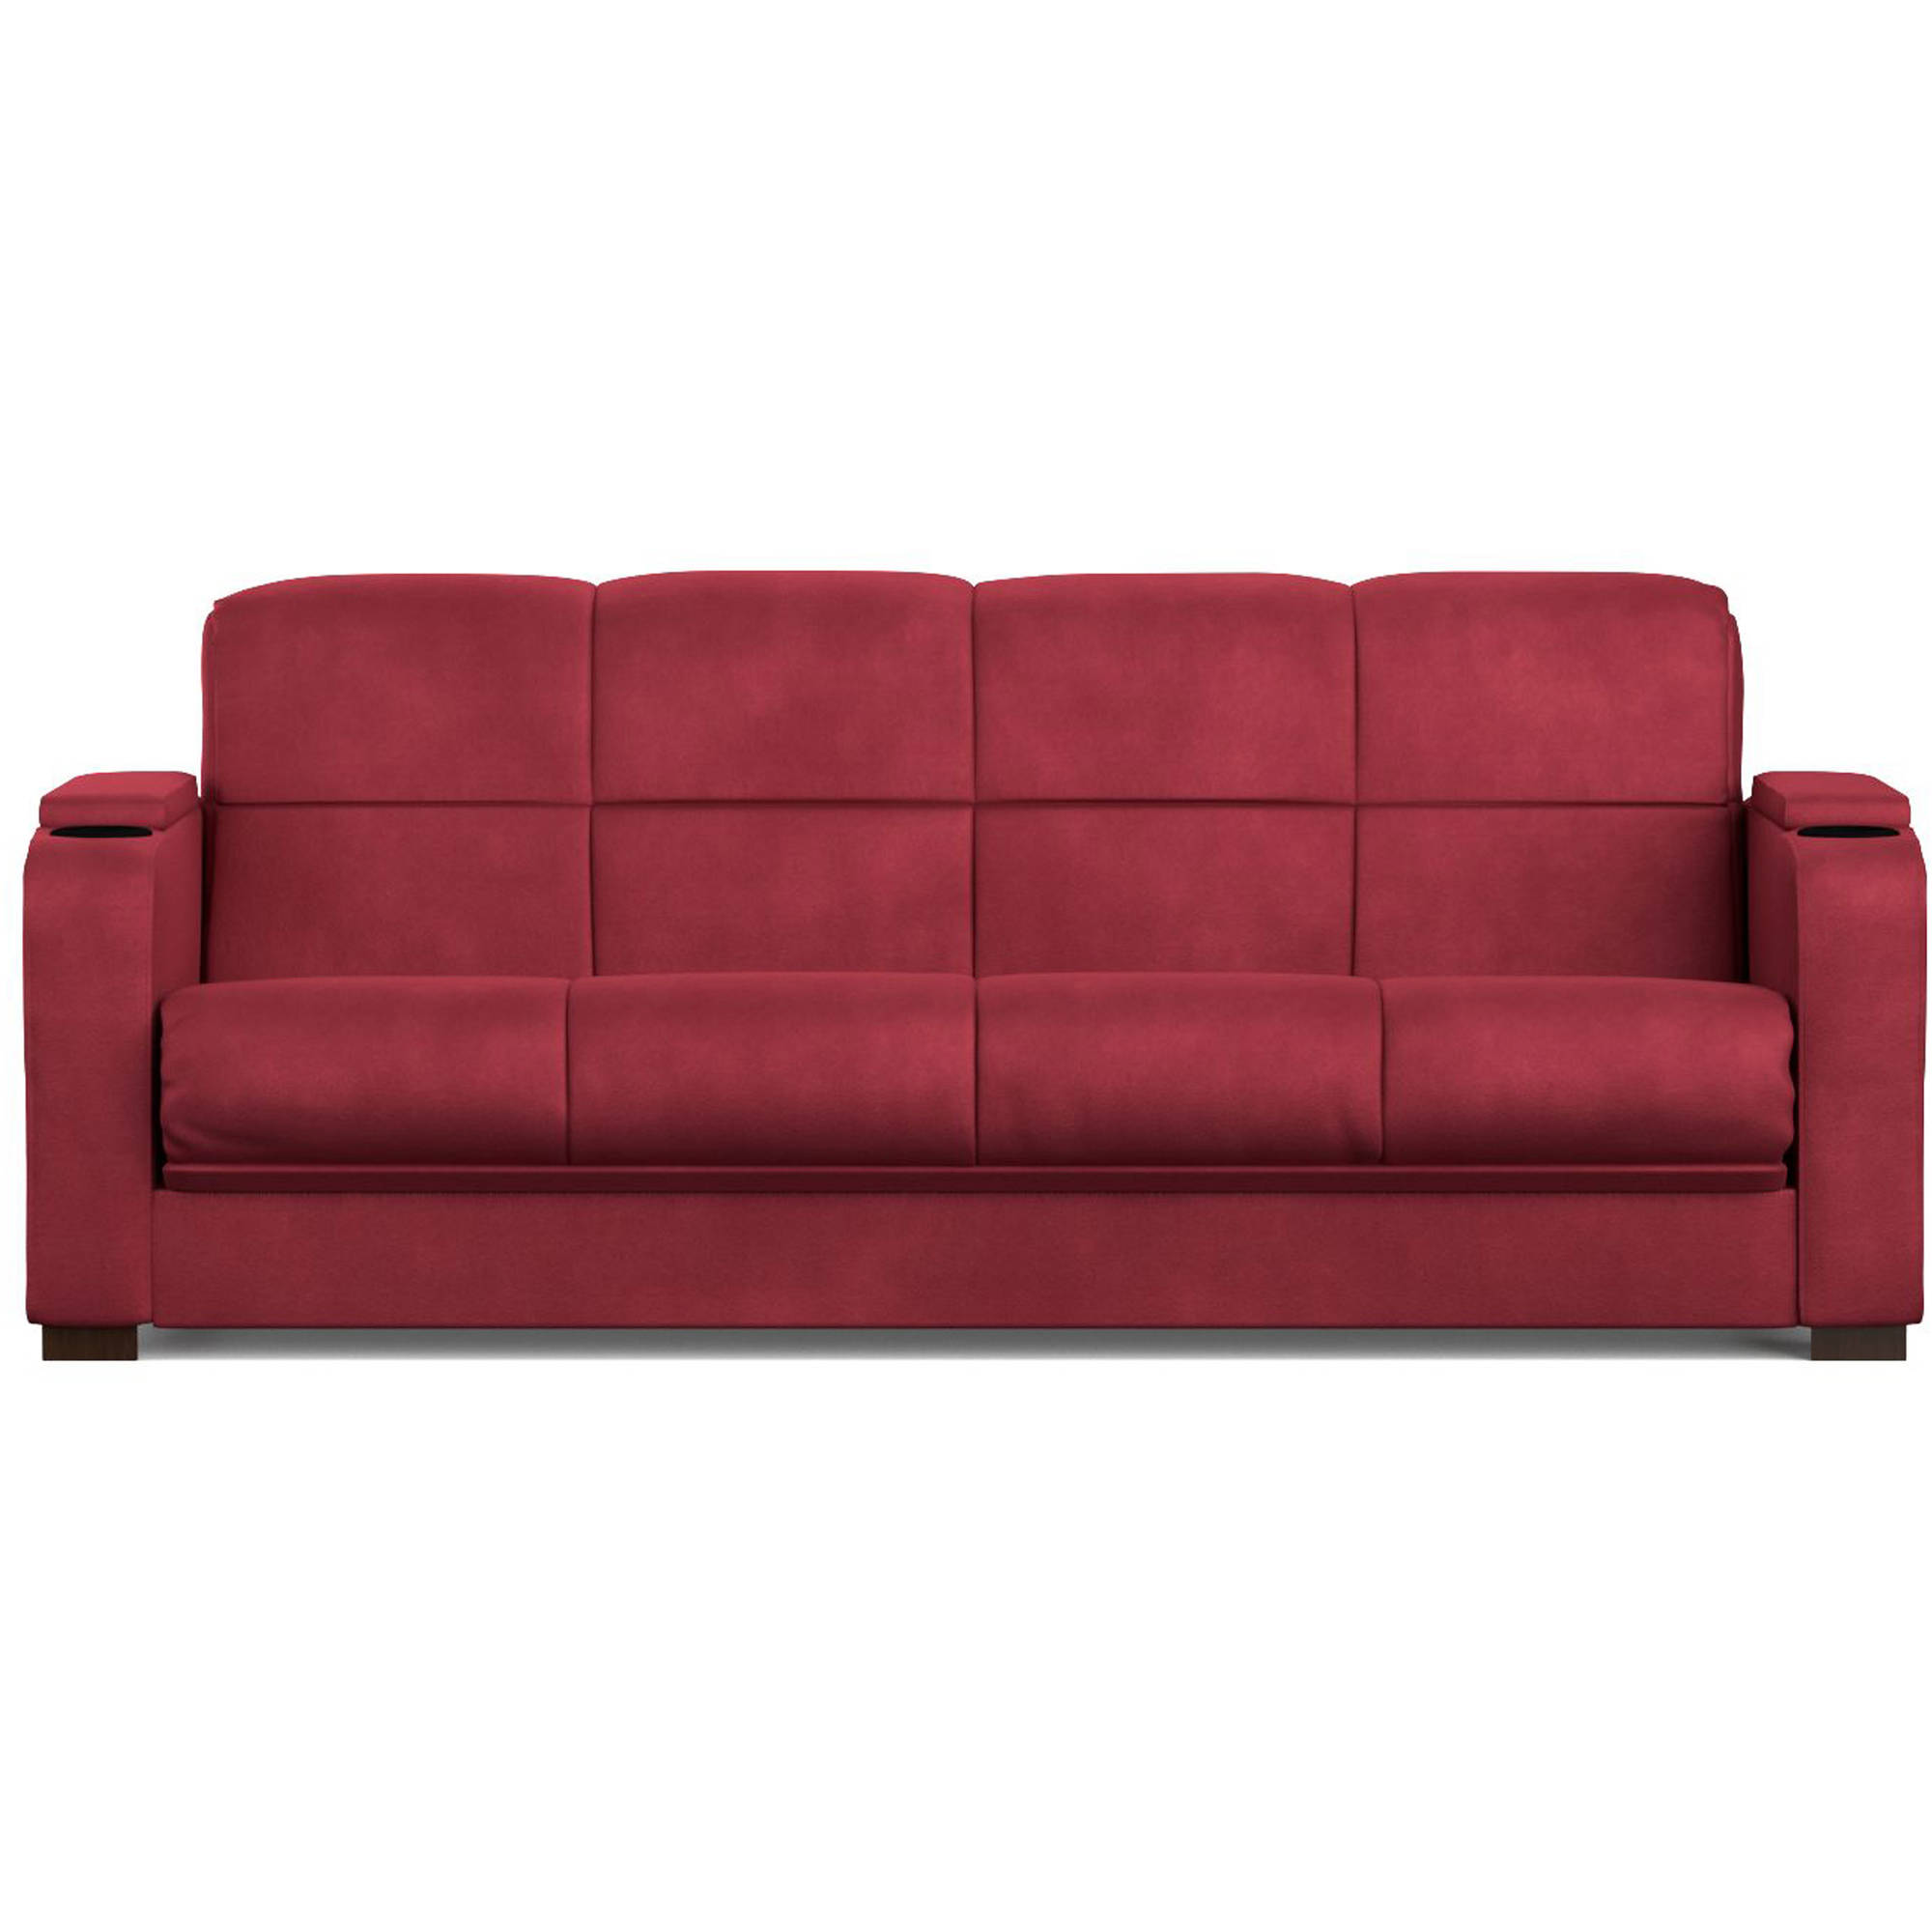 ss coco in p leather a address sofabed s next htm delivery serena email bqi day red friend futon img